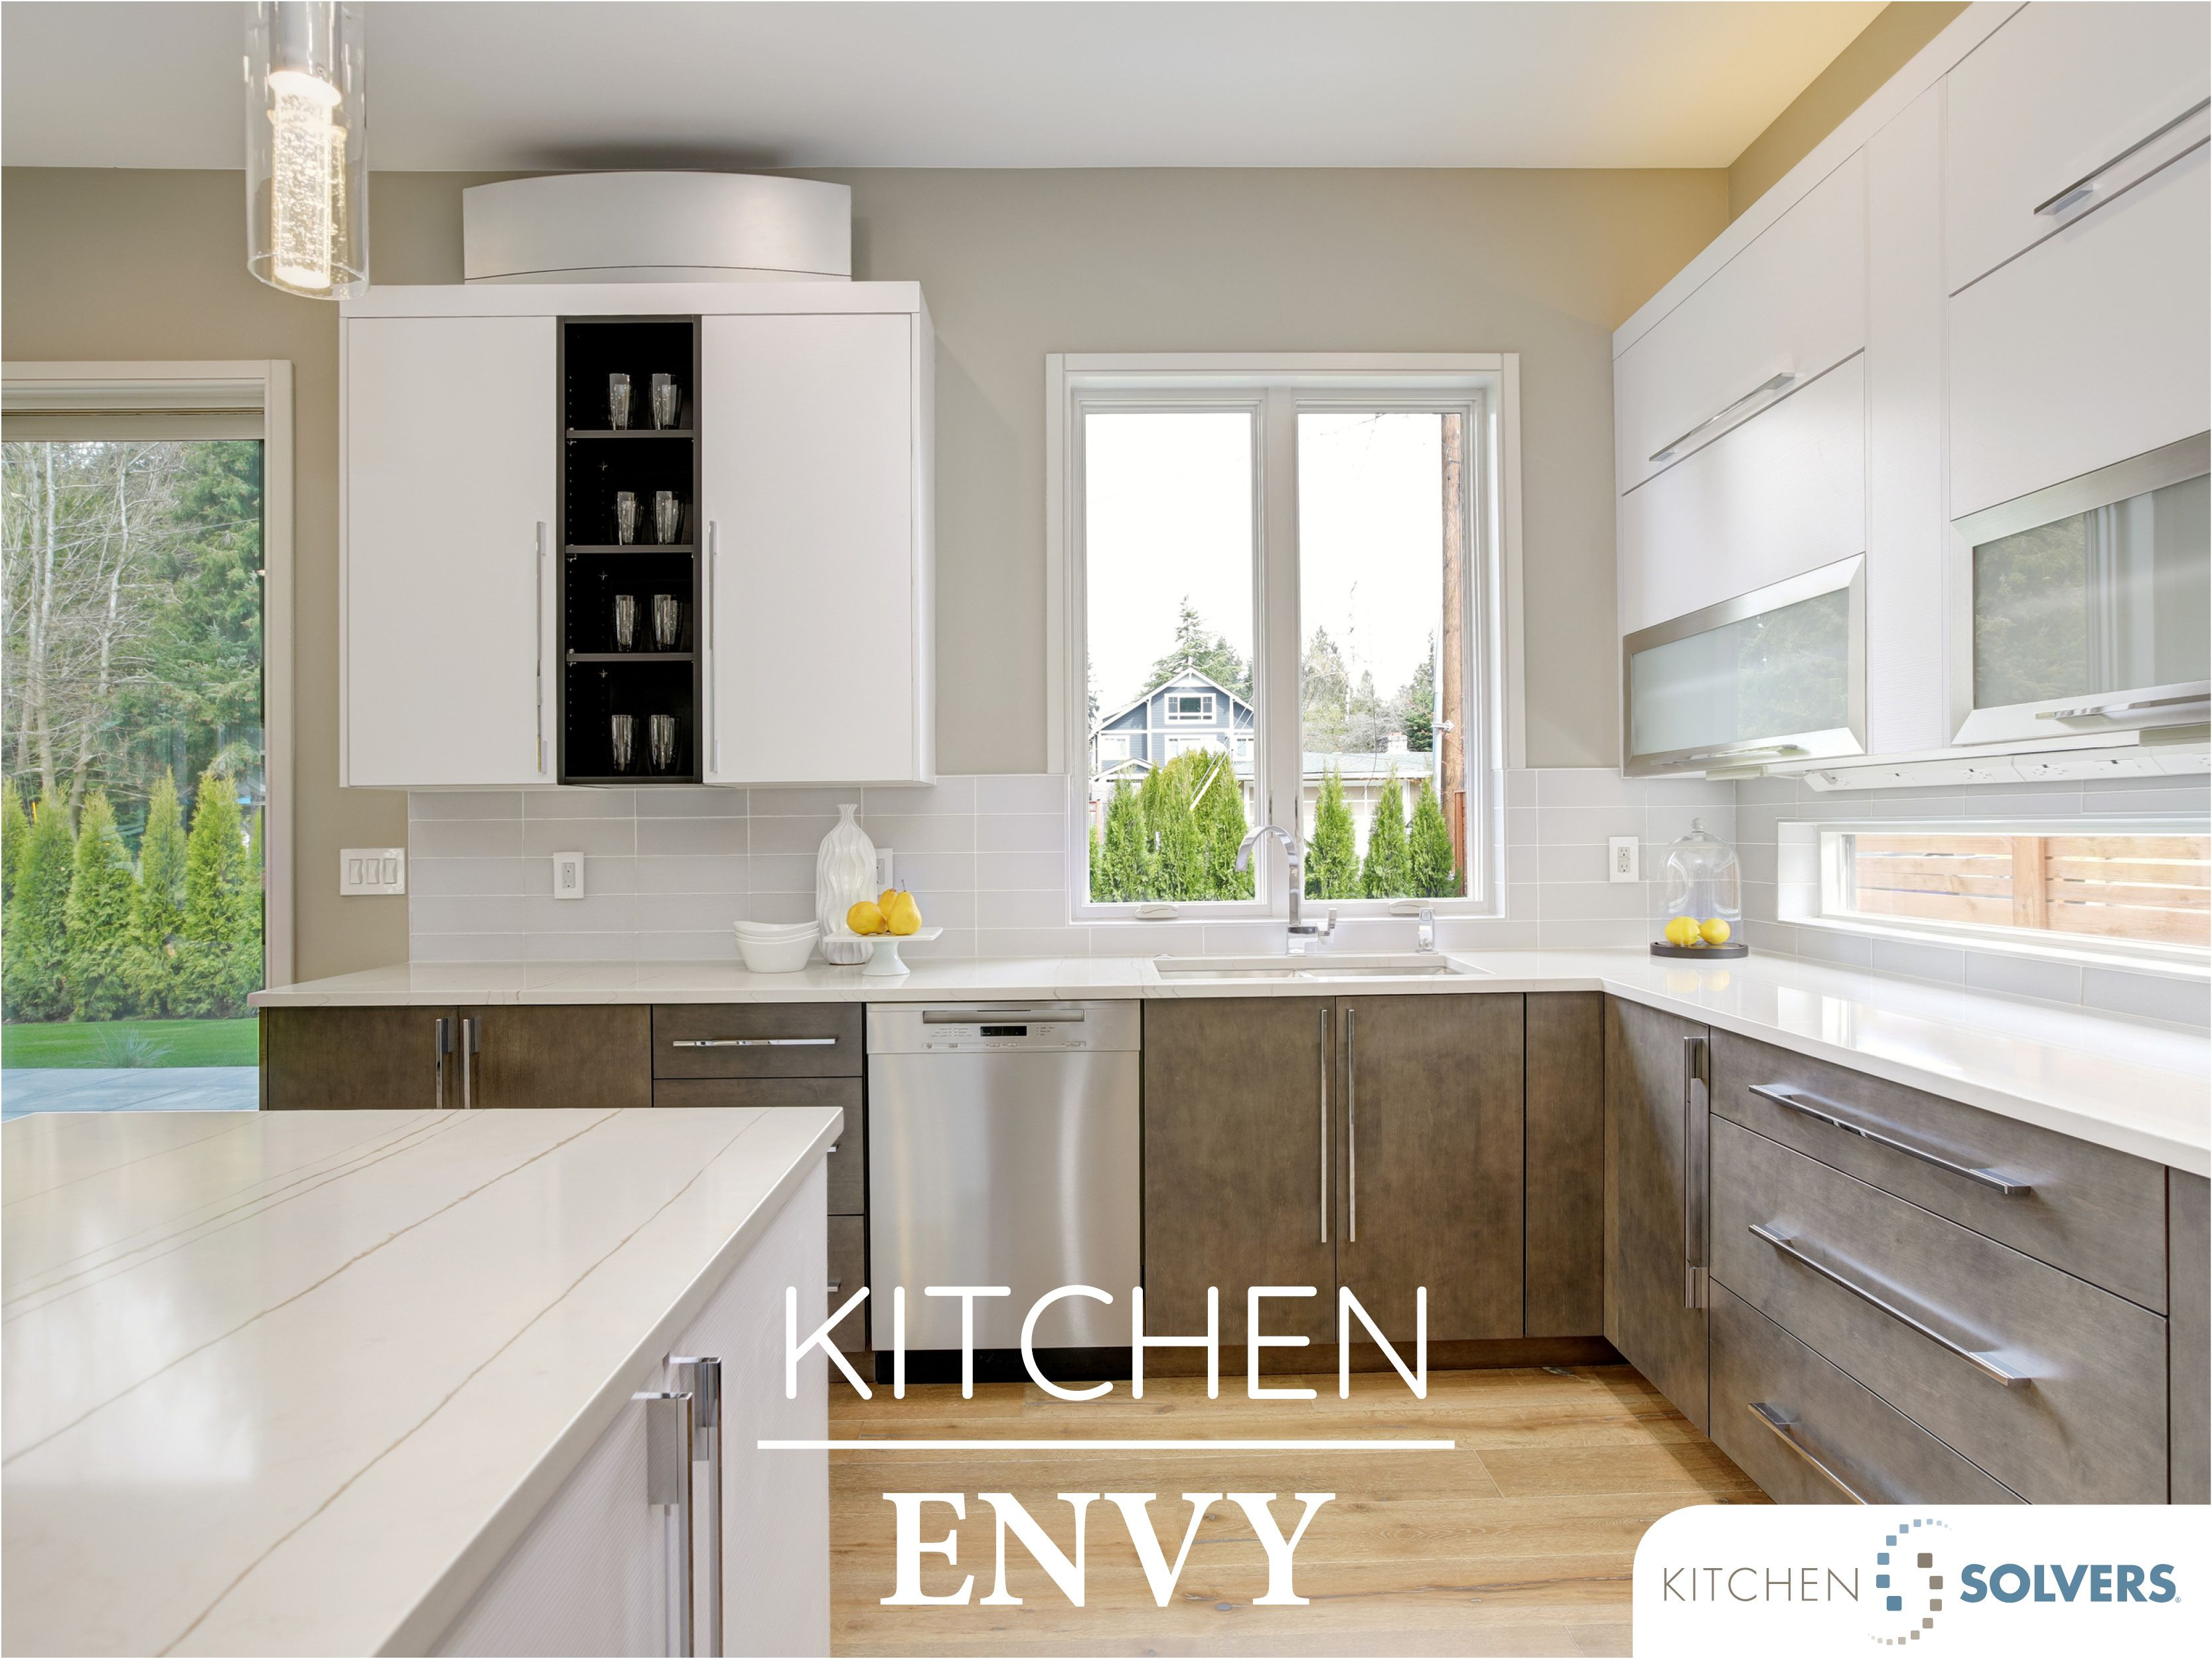 Impeccable Pairs This Two Toned Kitchen Has A Combination Of Two